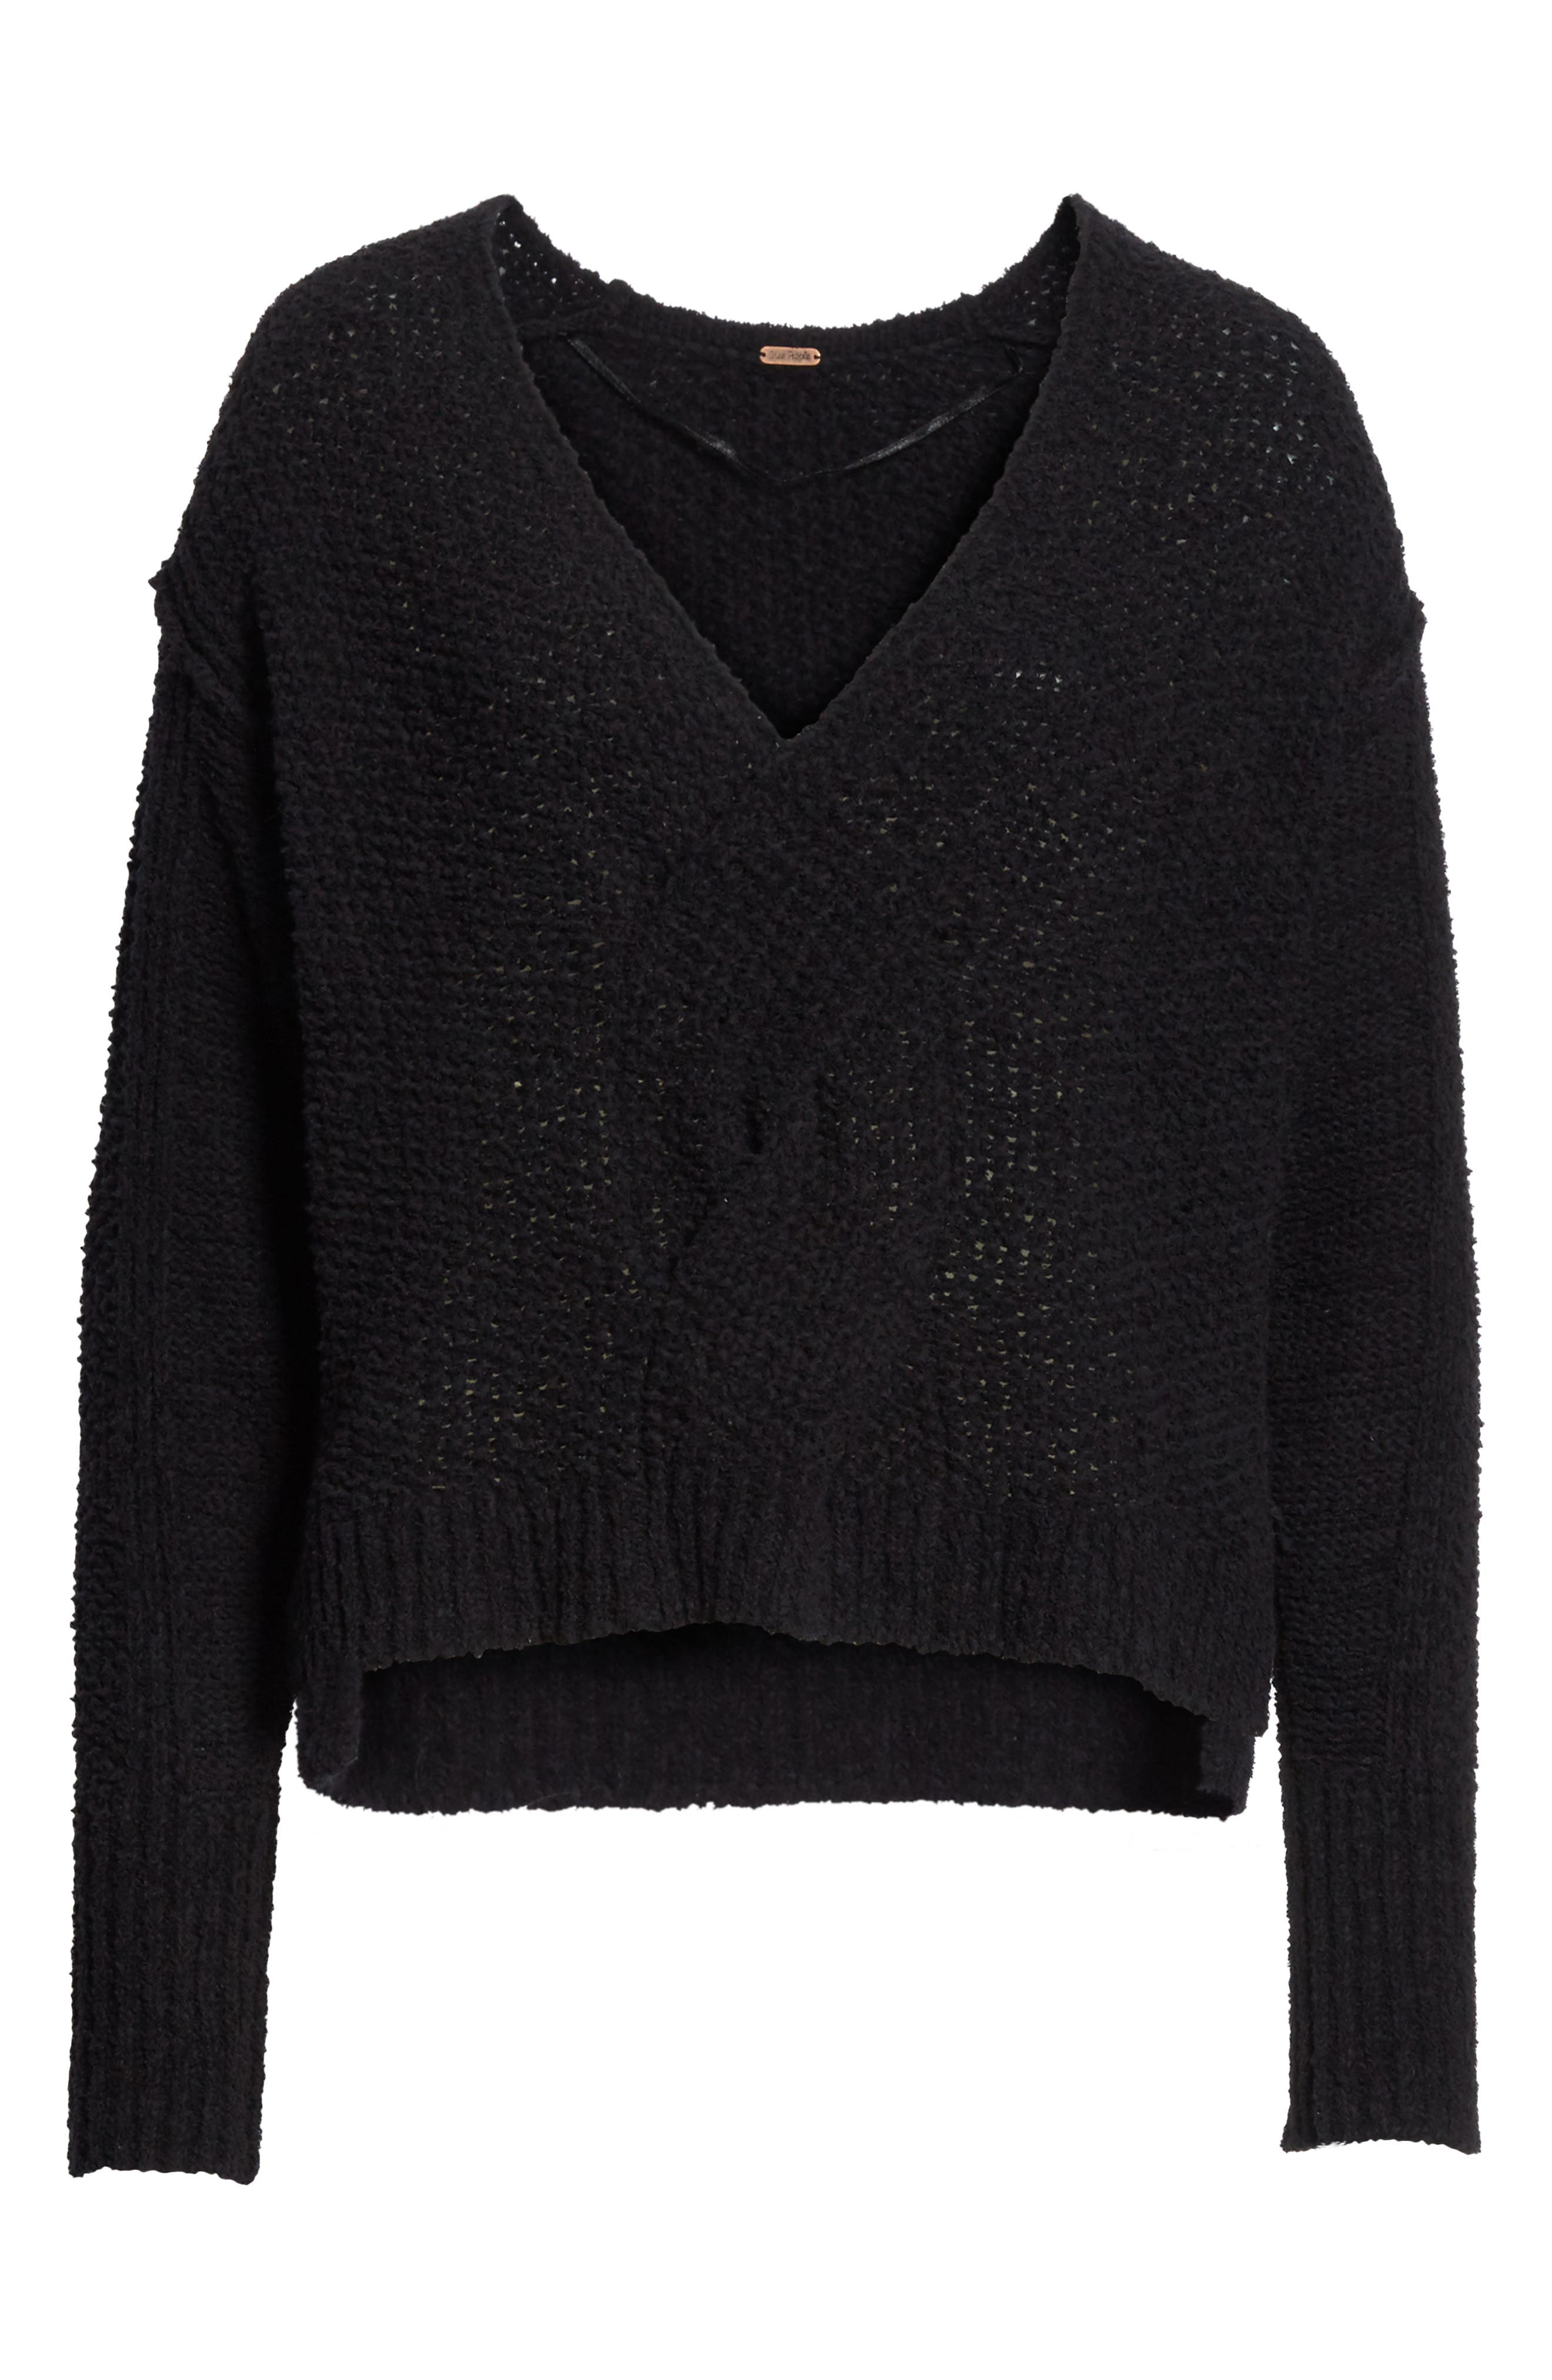 Coco V-Neck Sweater,                             Alternate thumbnail 6, color,                             001